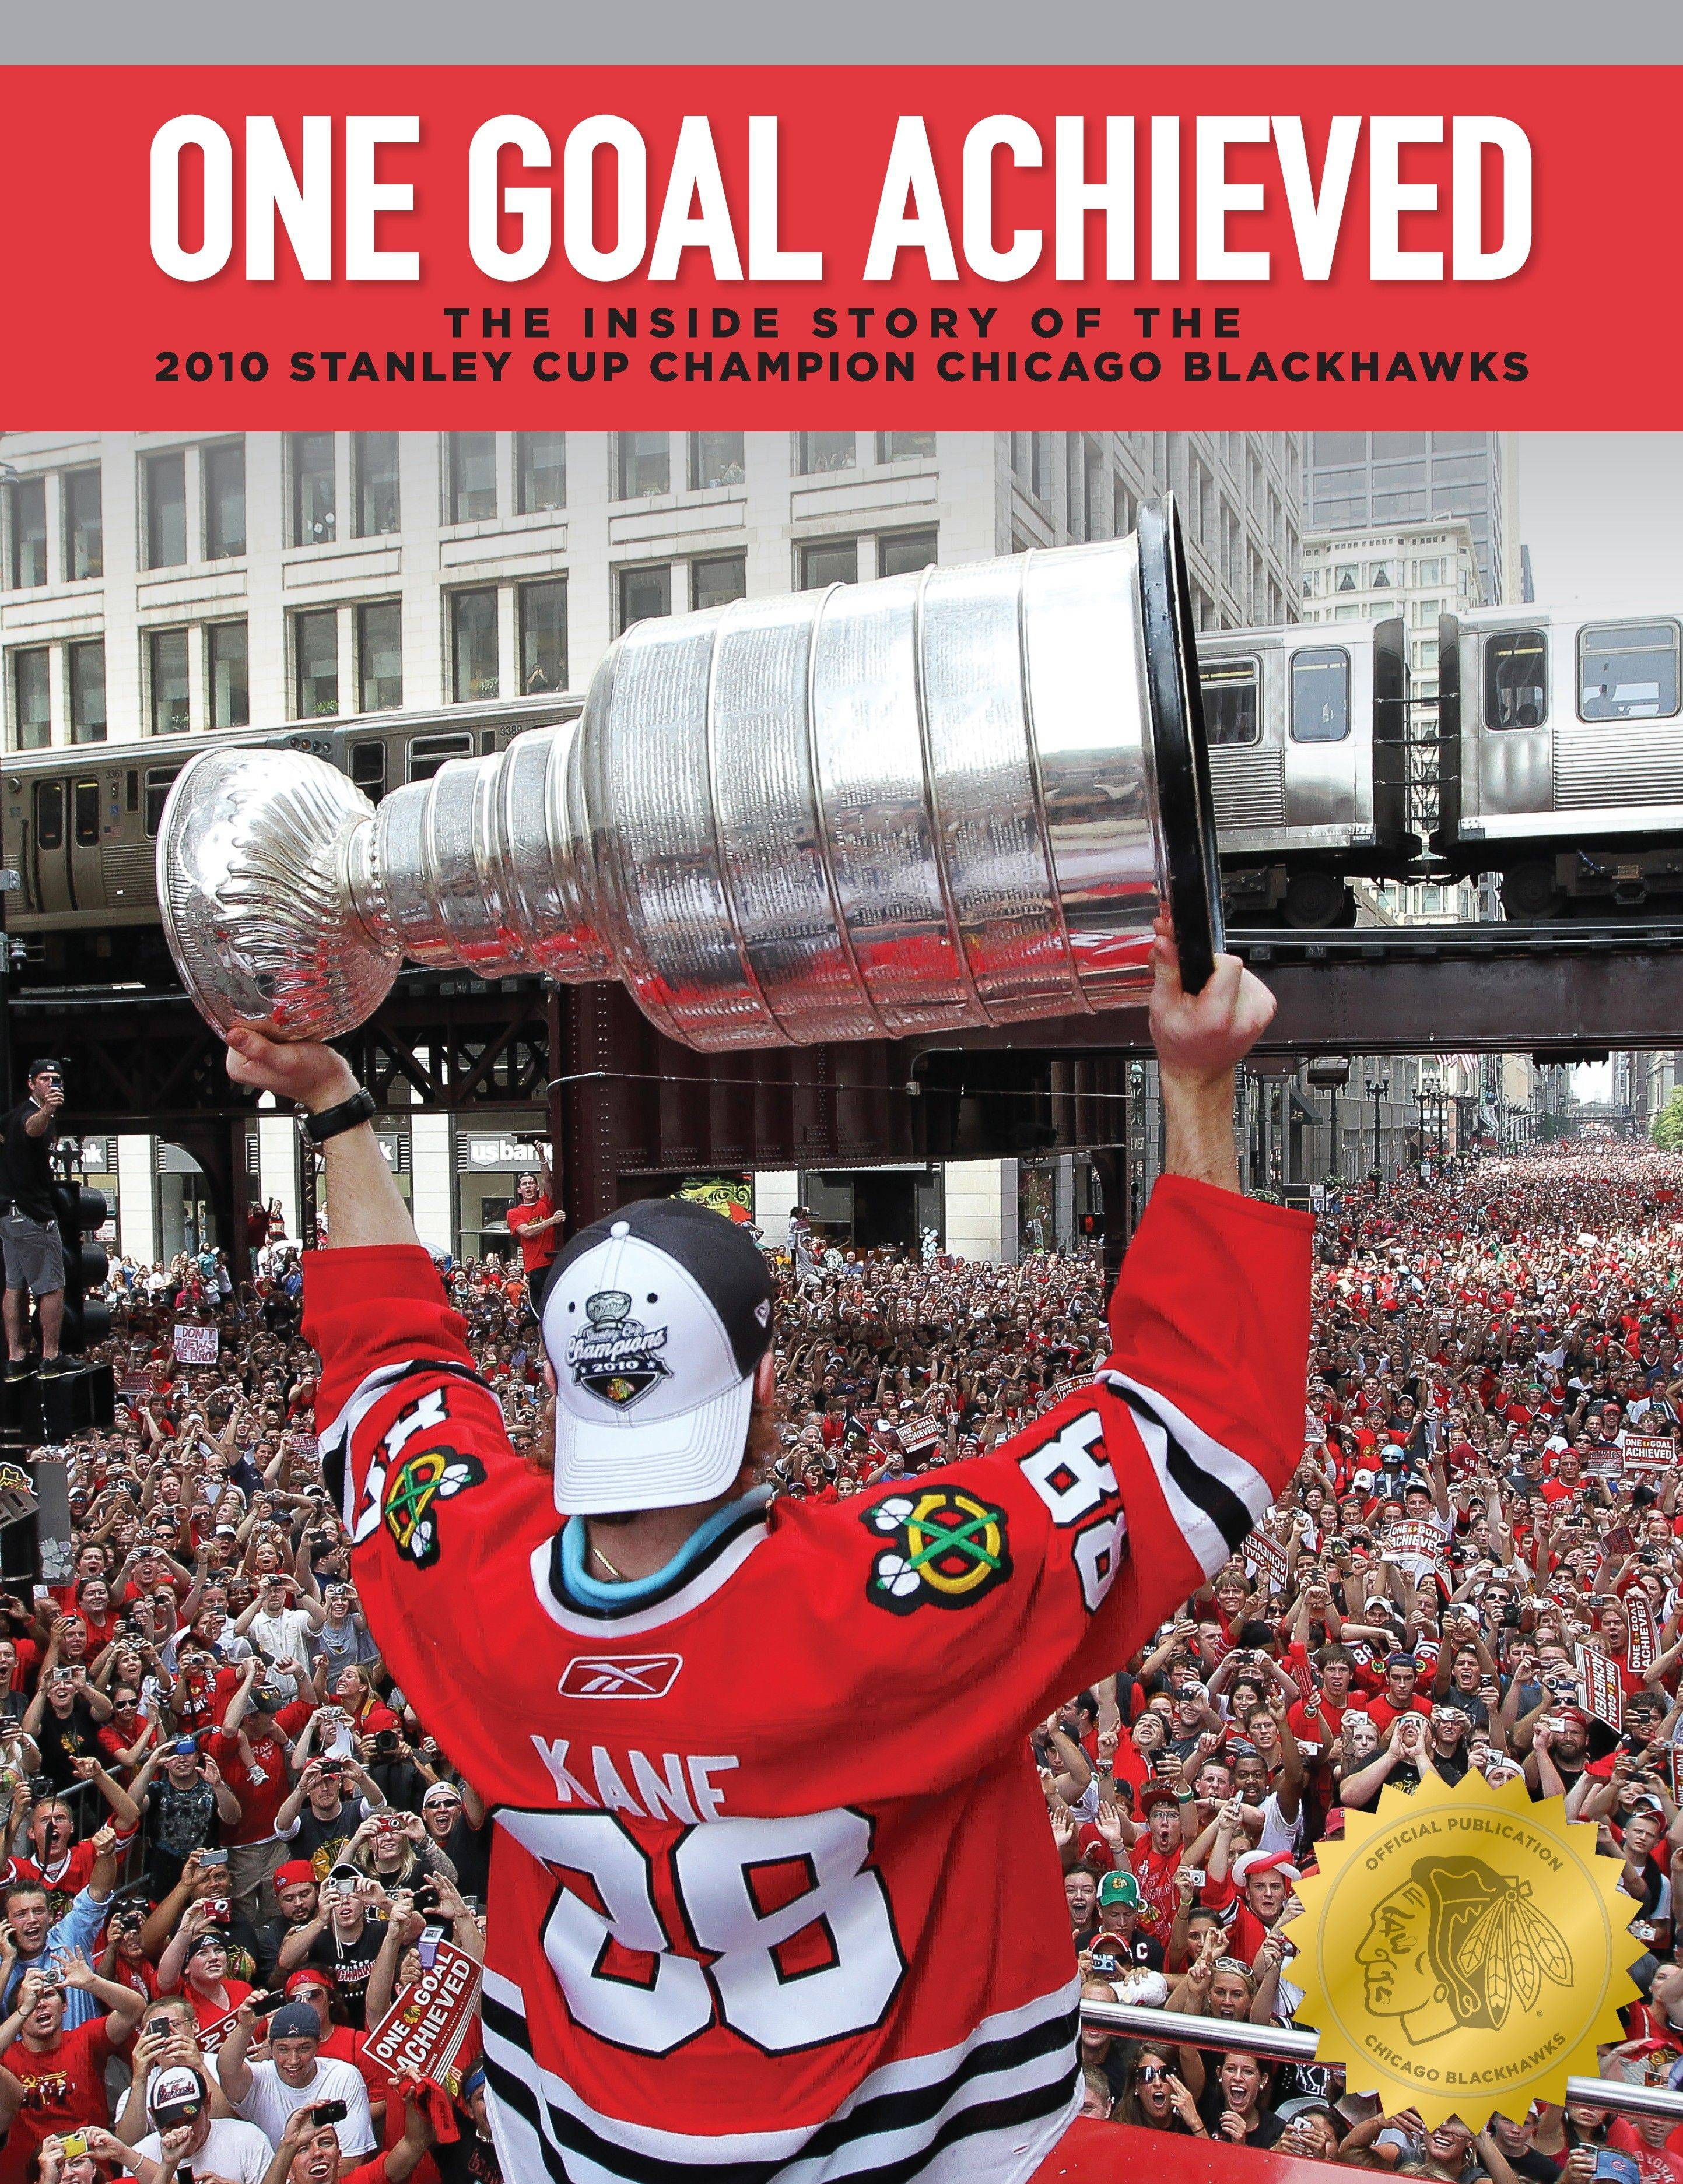 'One Goal Achieved,' newest Blackhawks book raises the collectibles bar